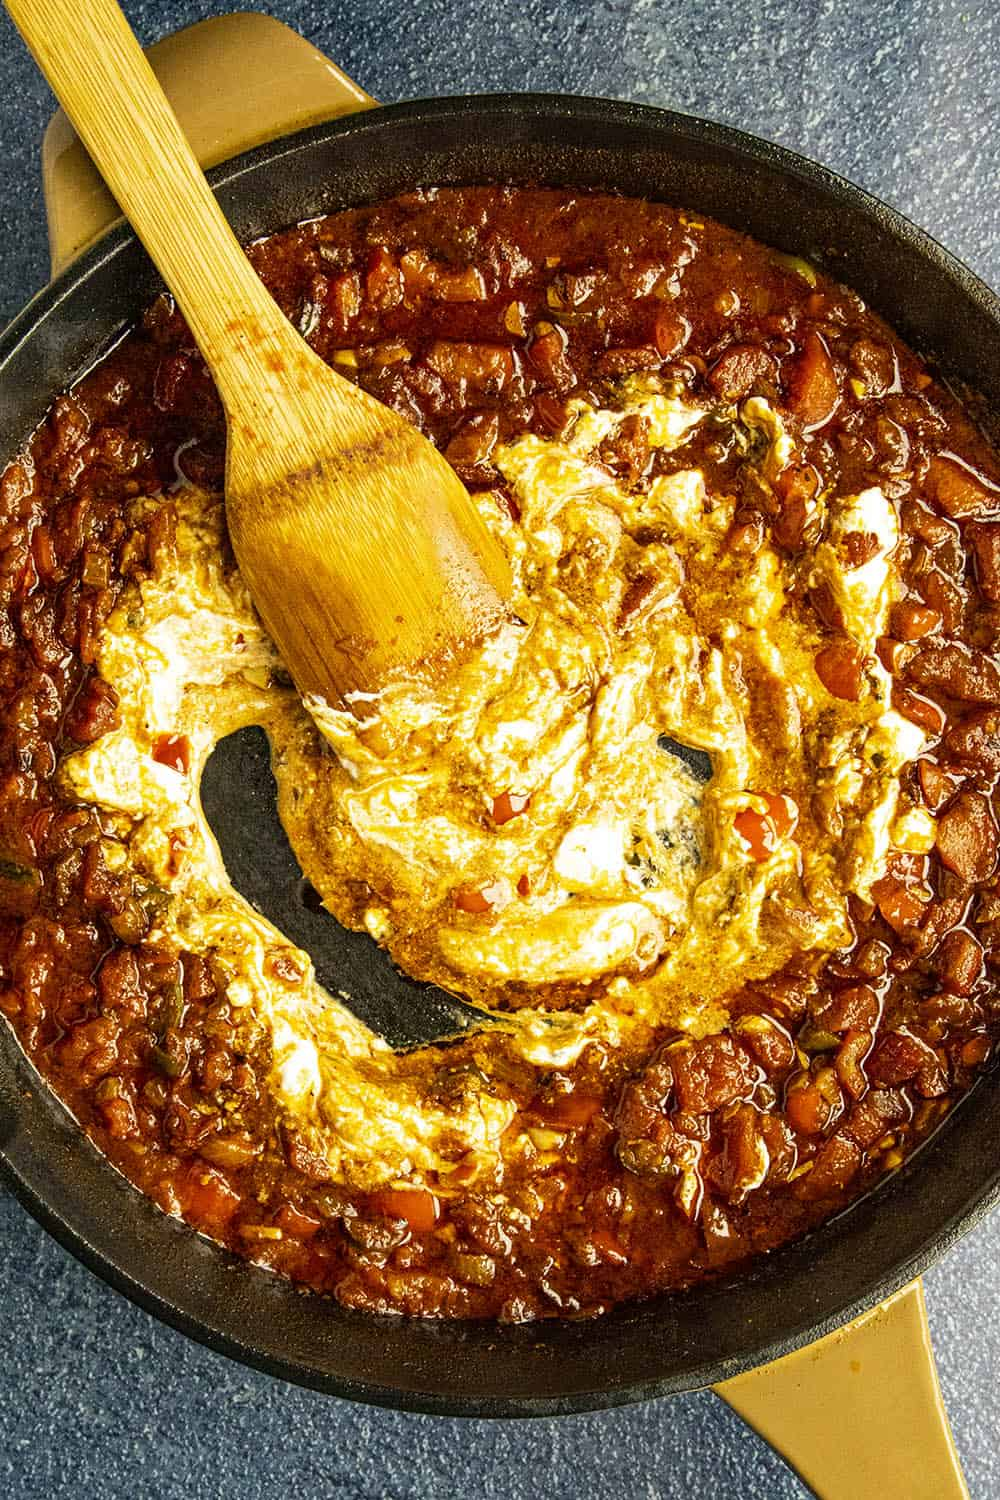 Swirling sour cream into the paprika sauce